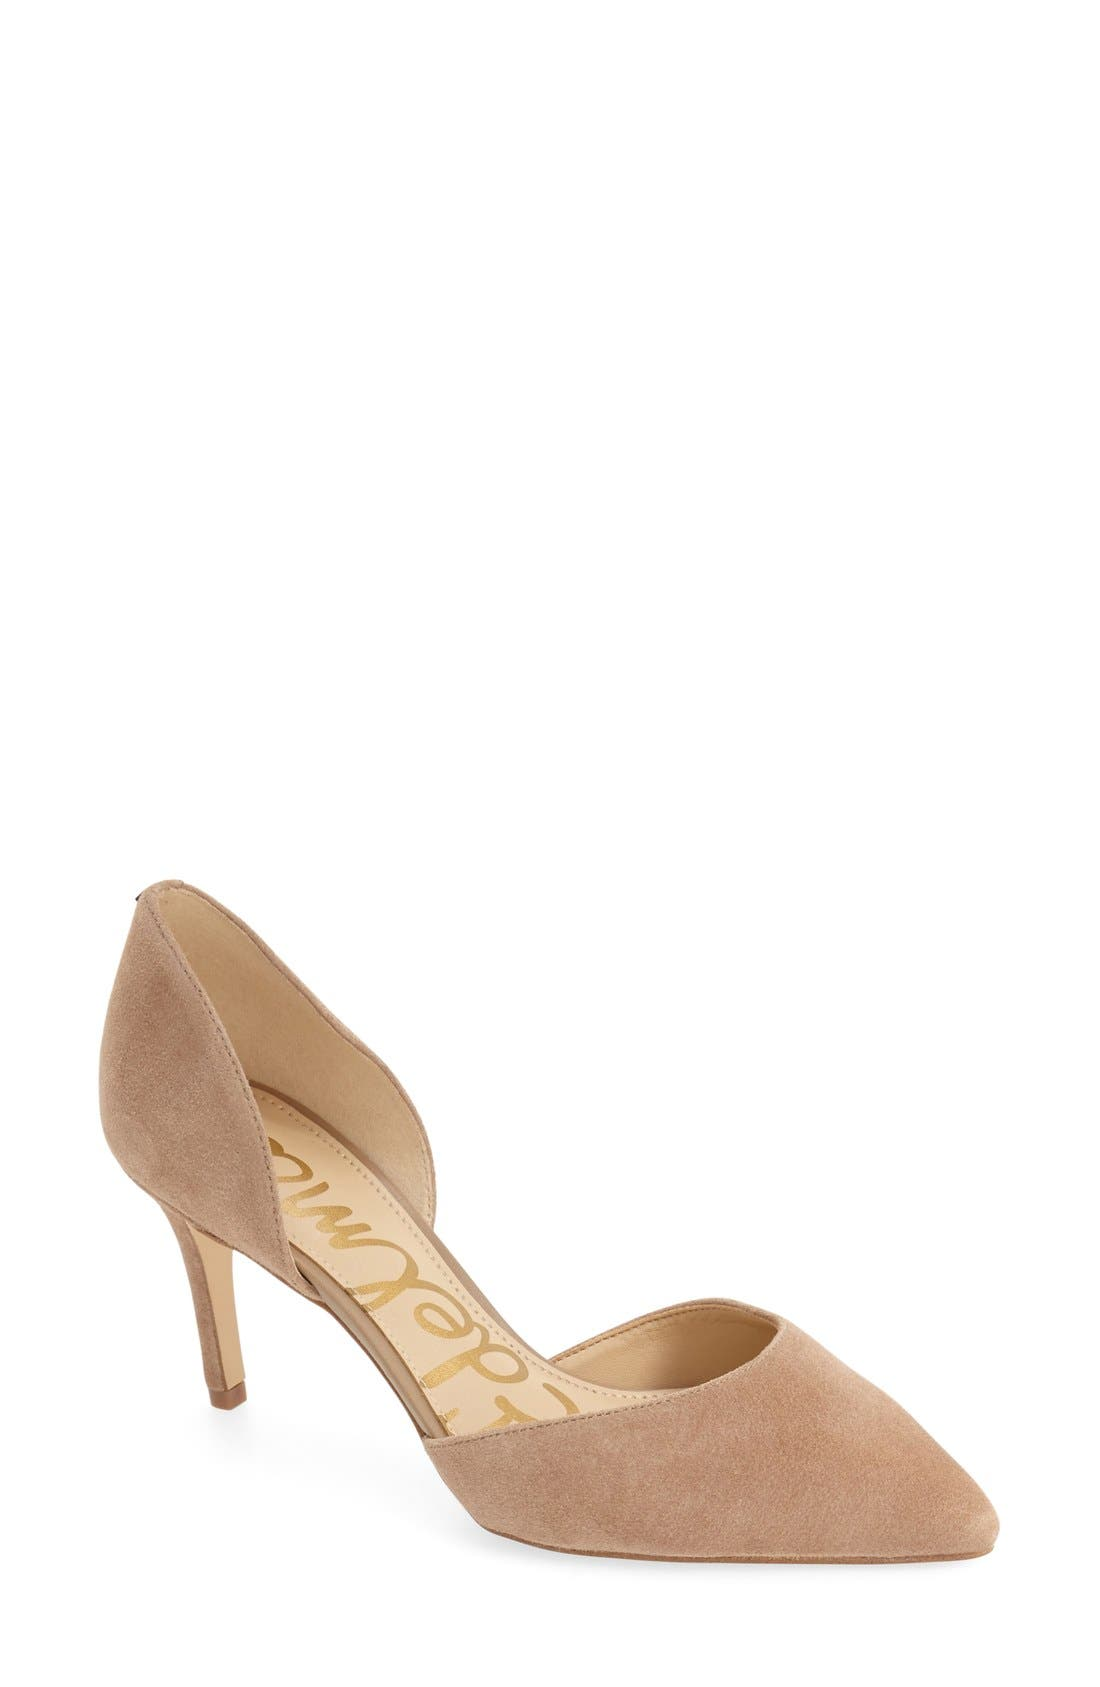 'Telsa' d'Orsay Pointy Toe Pump,                             Main thumbnail 10, color,